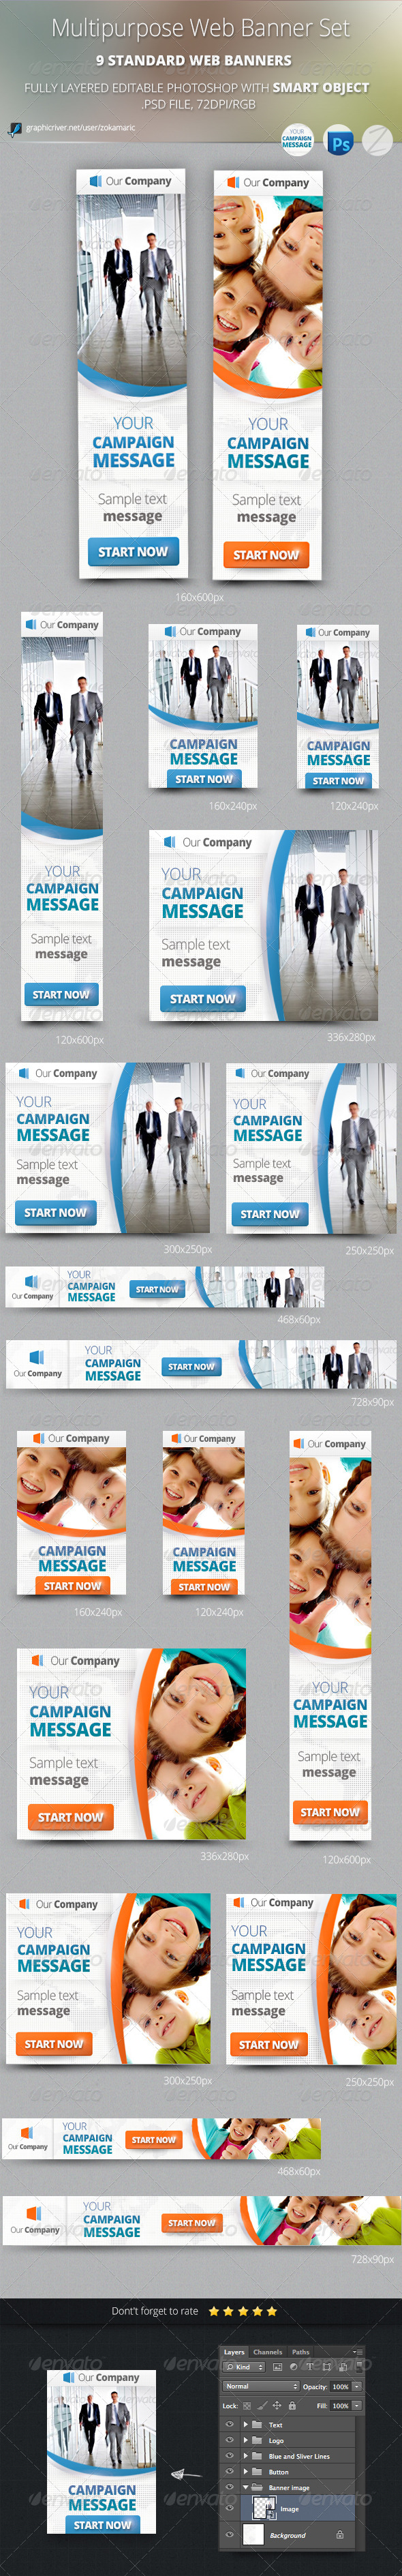 GraphicRiver Multipurpose Web Banner Set 5390649